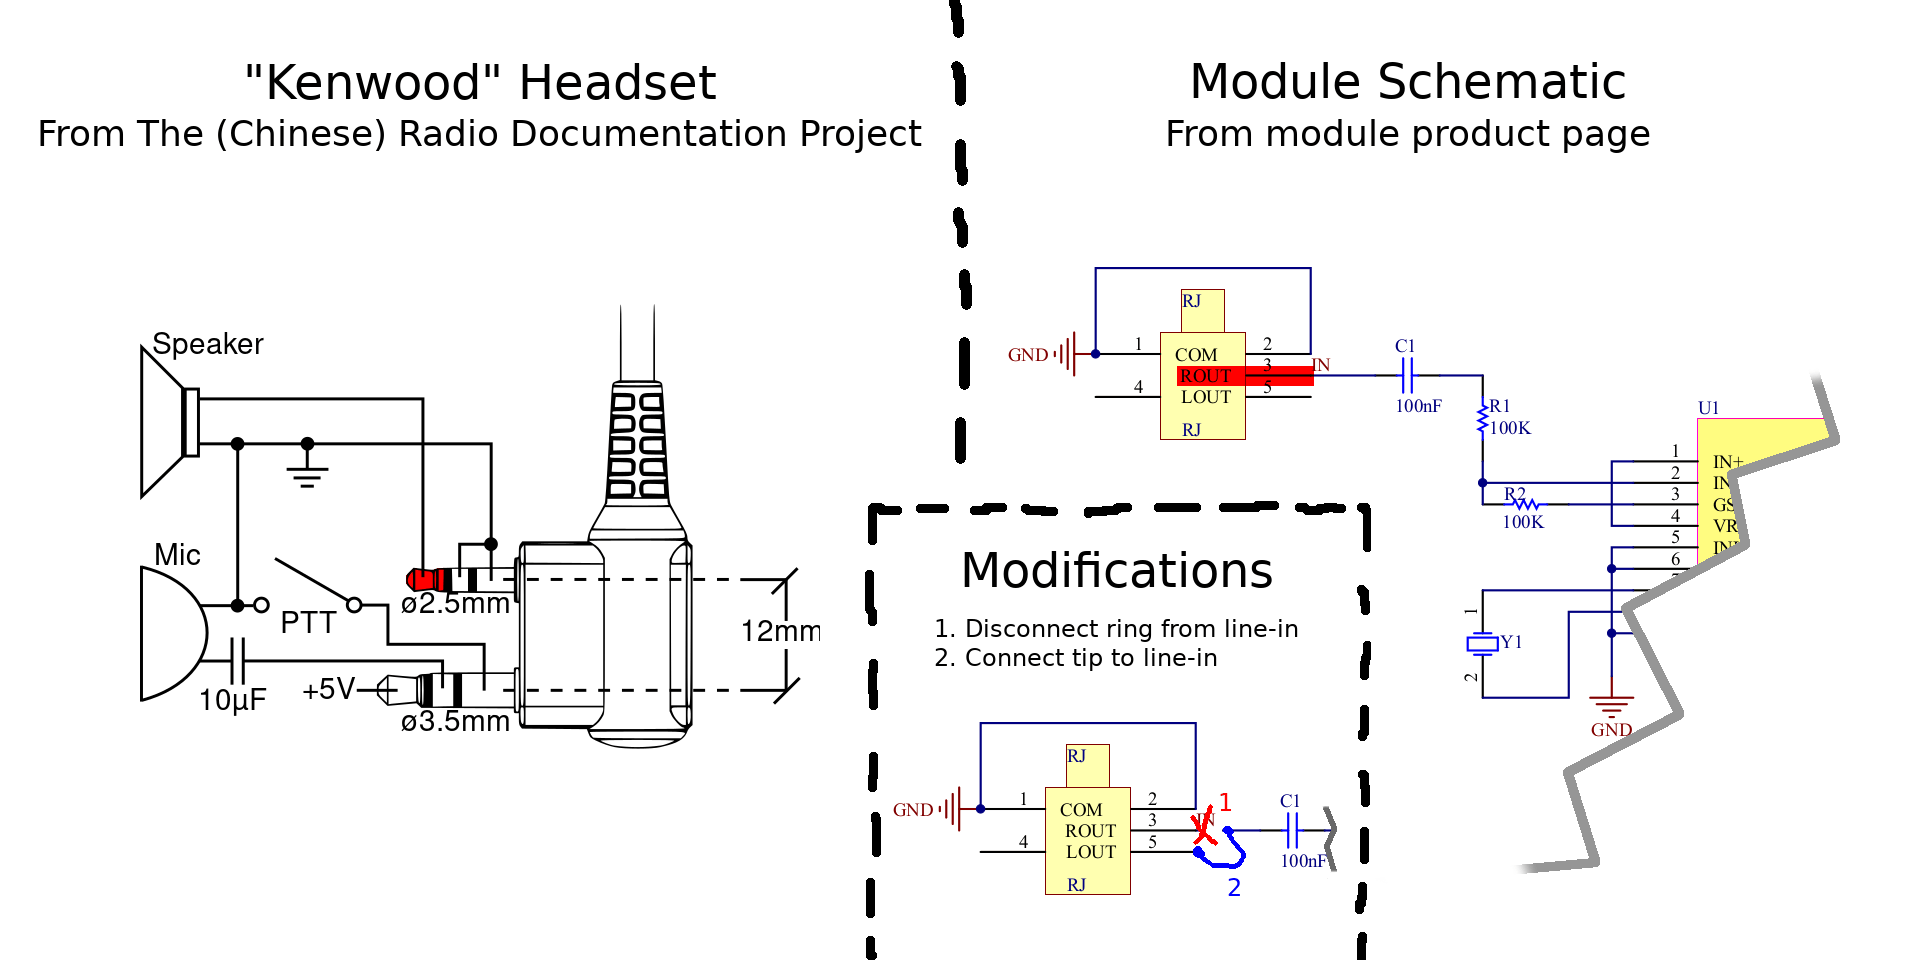 hight resolution of i got the schematic of the headset connector from the the chinese radio documentation project and the schematic of the module from a product page i found